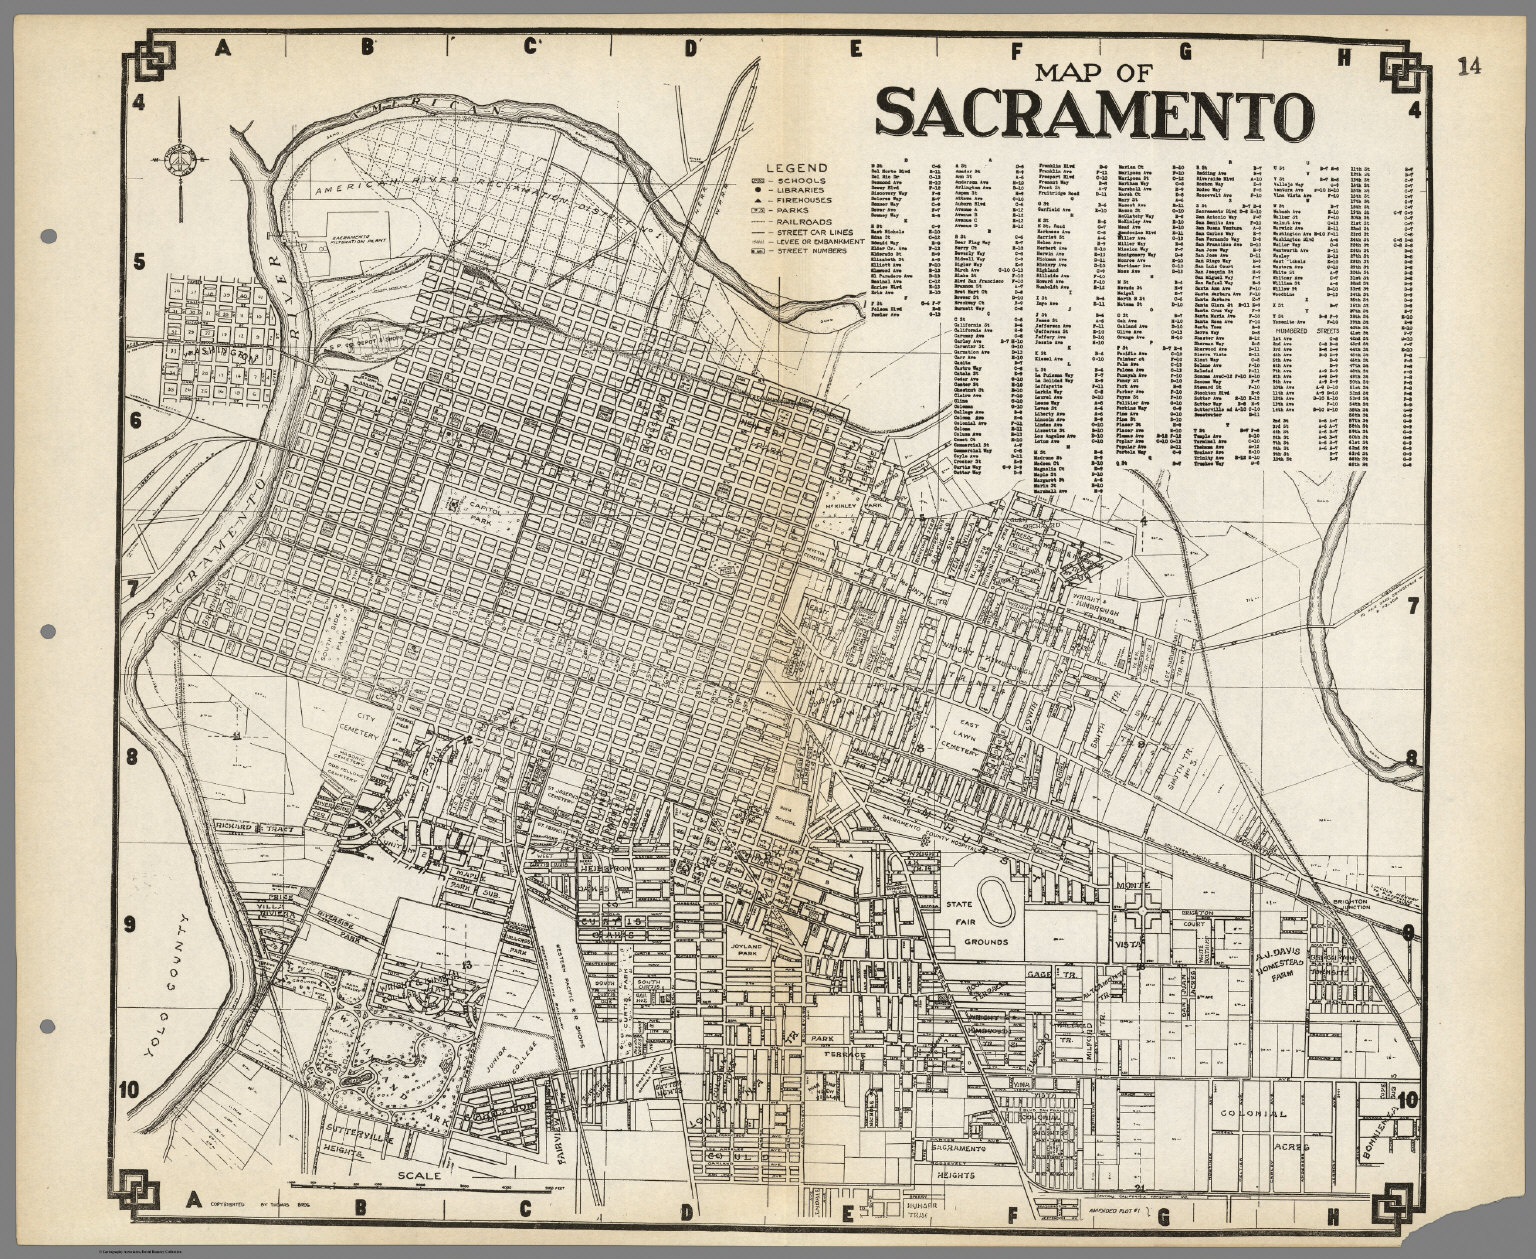 Map of Sacramento, California.